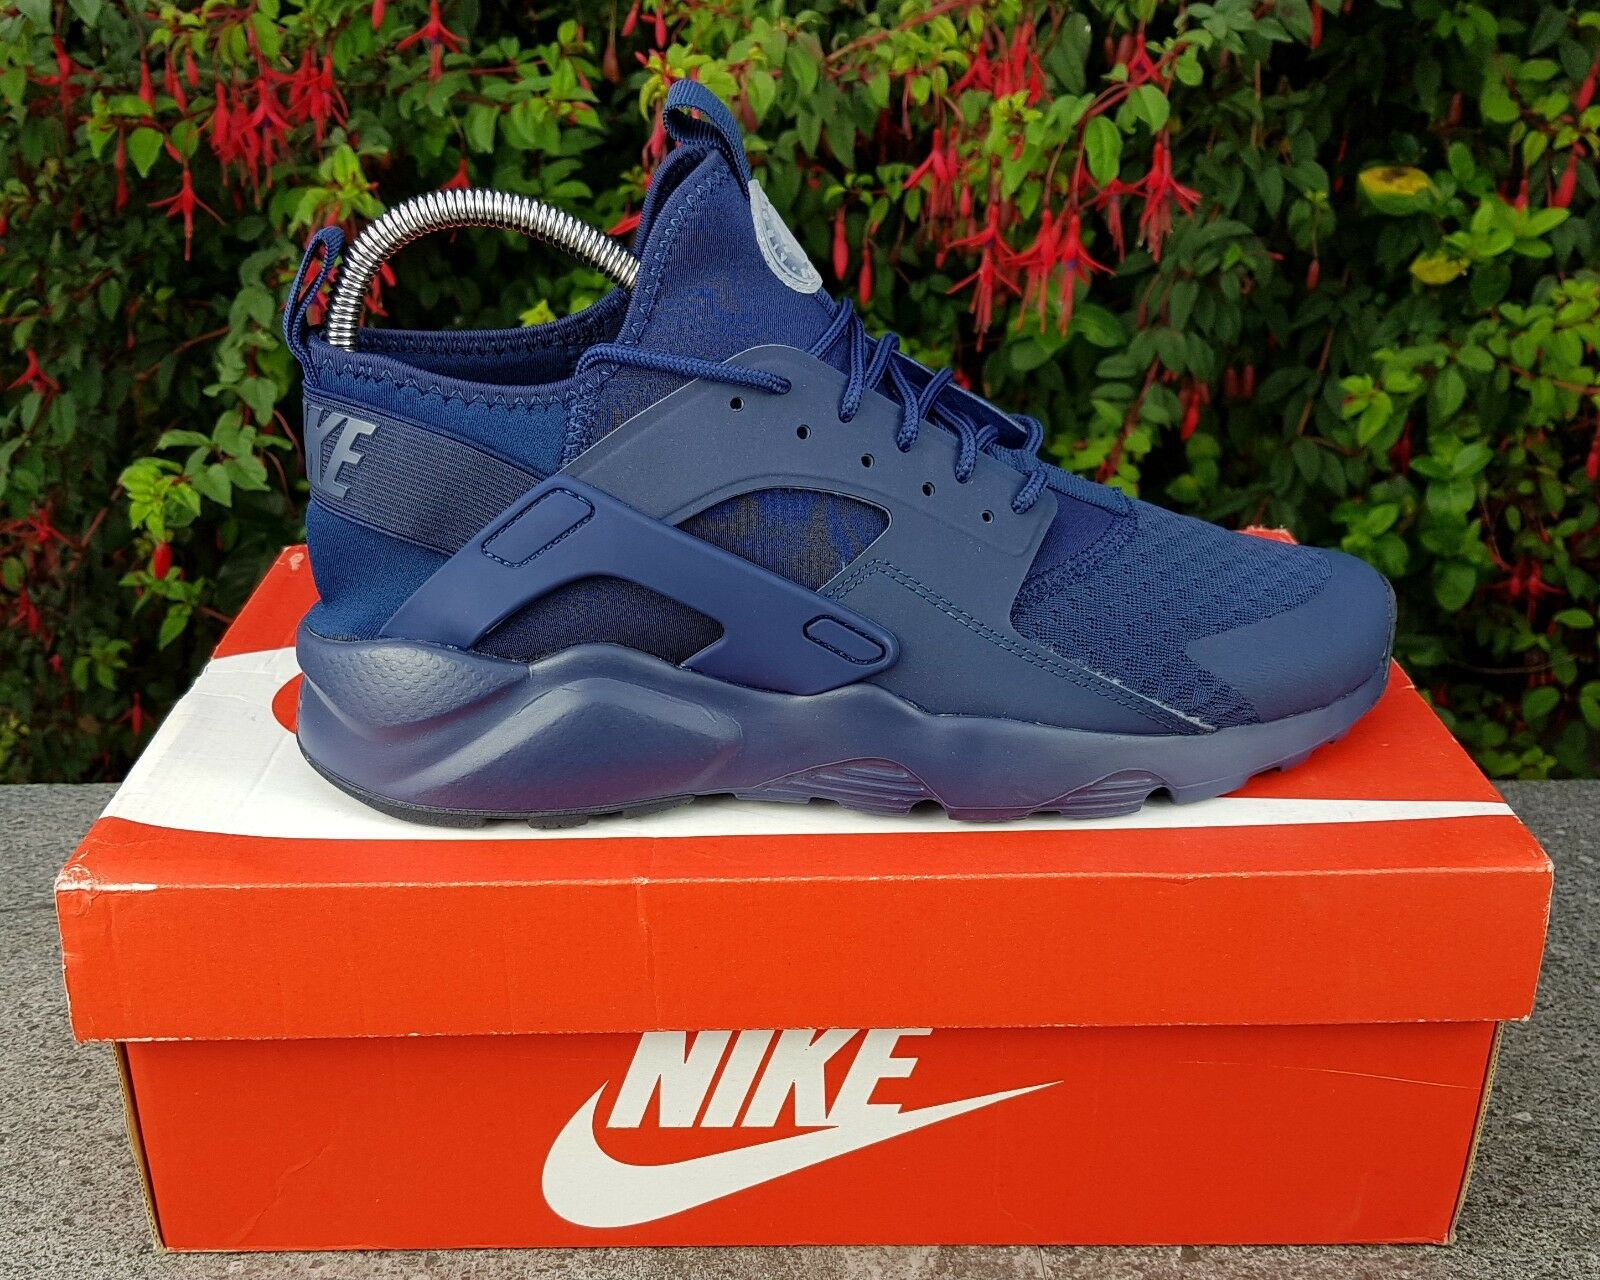 BNWB & Authentic Nike Air Huarache courir Ultra ® Navy Bleu Trainers UK